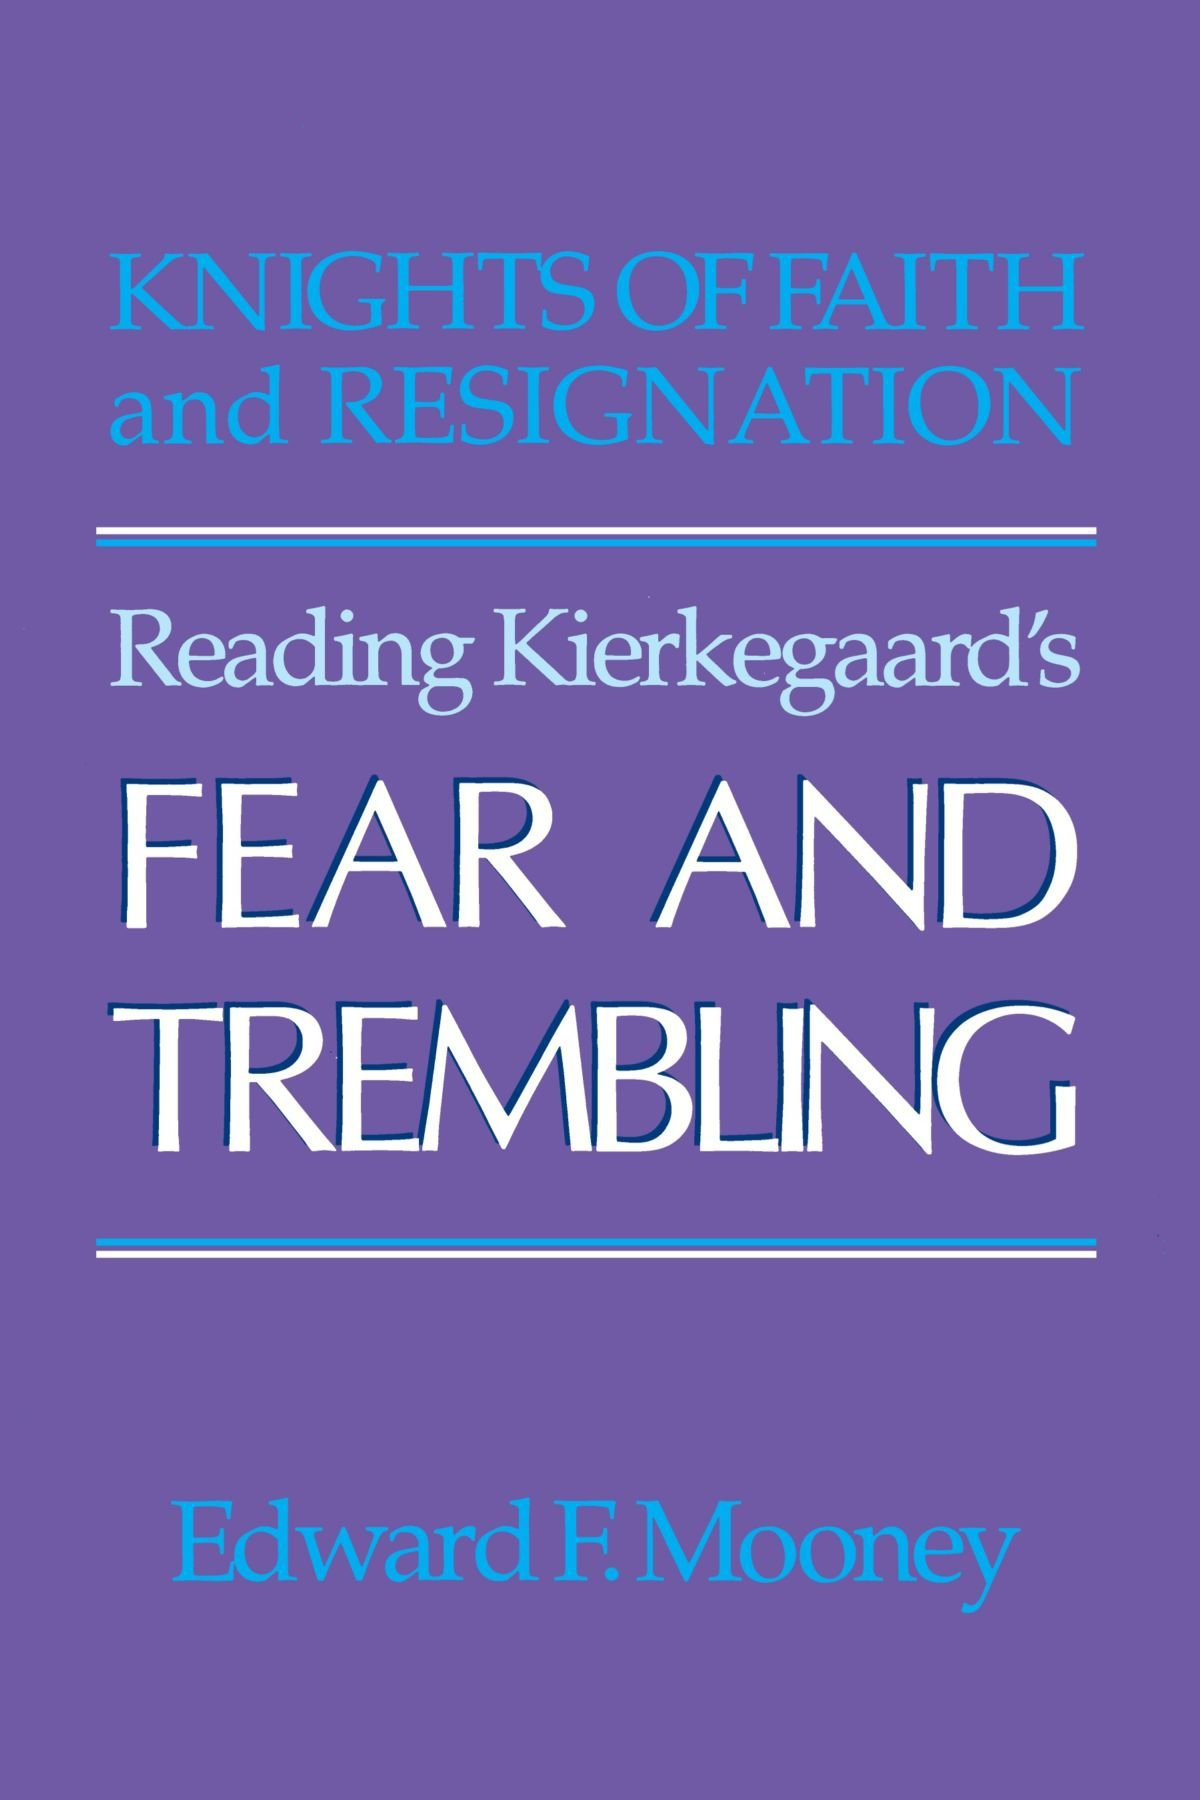 Knights of Faith and Resignation: Reading Kierkegaard's Fear and Trembling